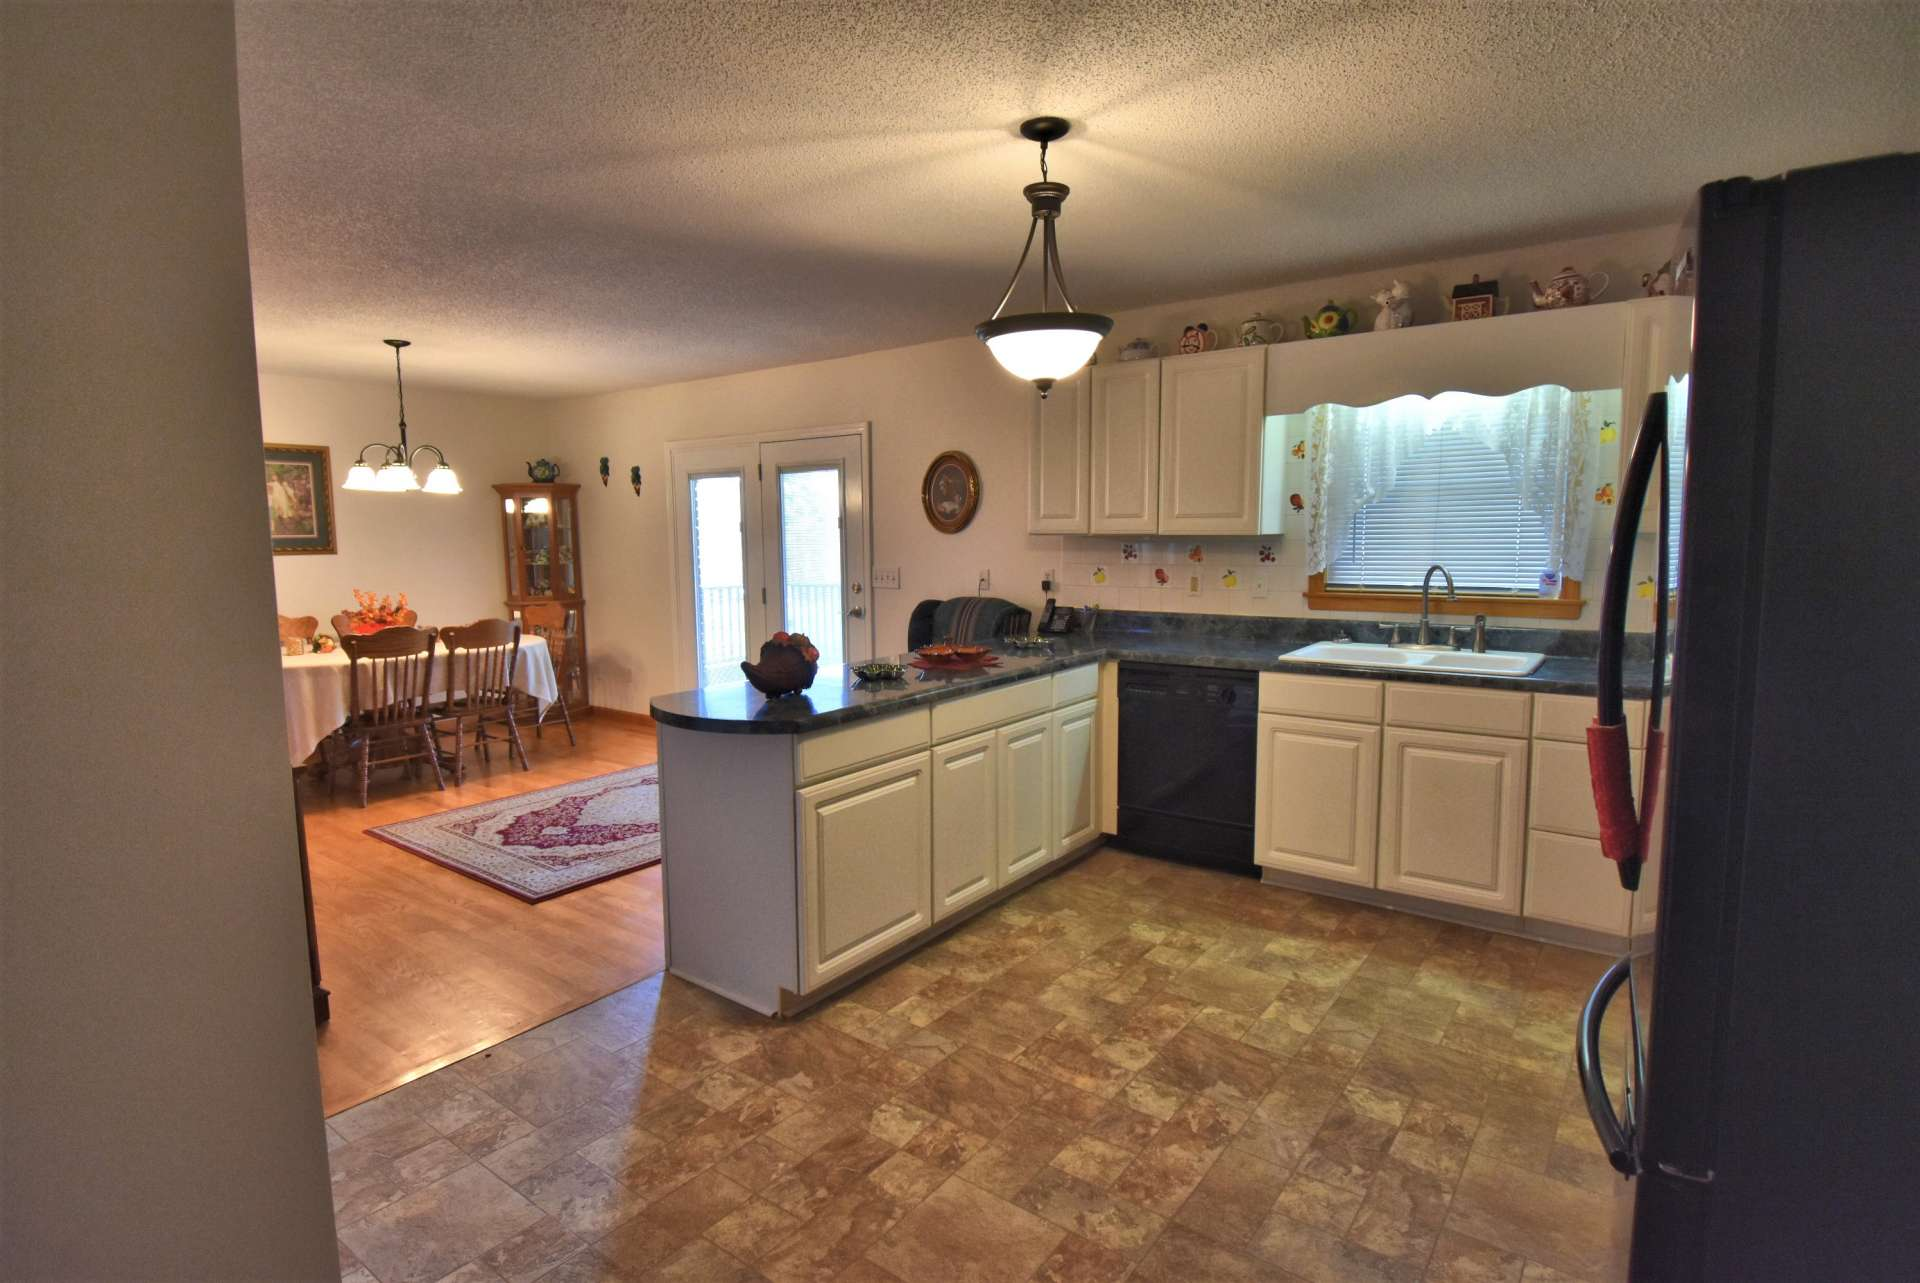 The kitchen is open to the dining area for convenience when entertaining family and friends.